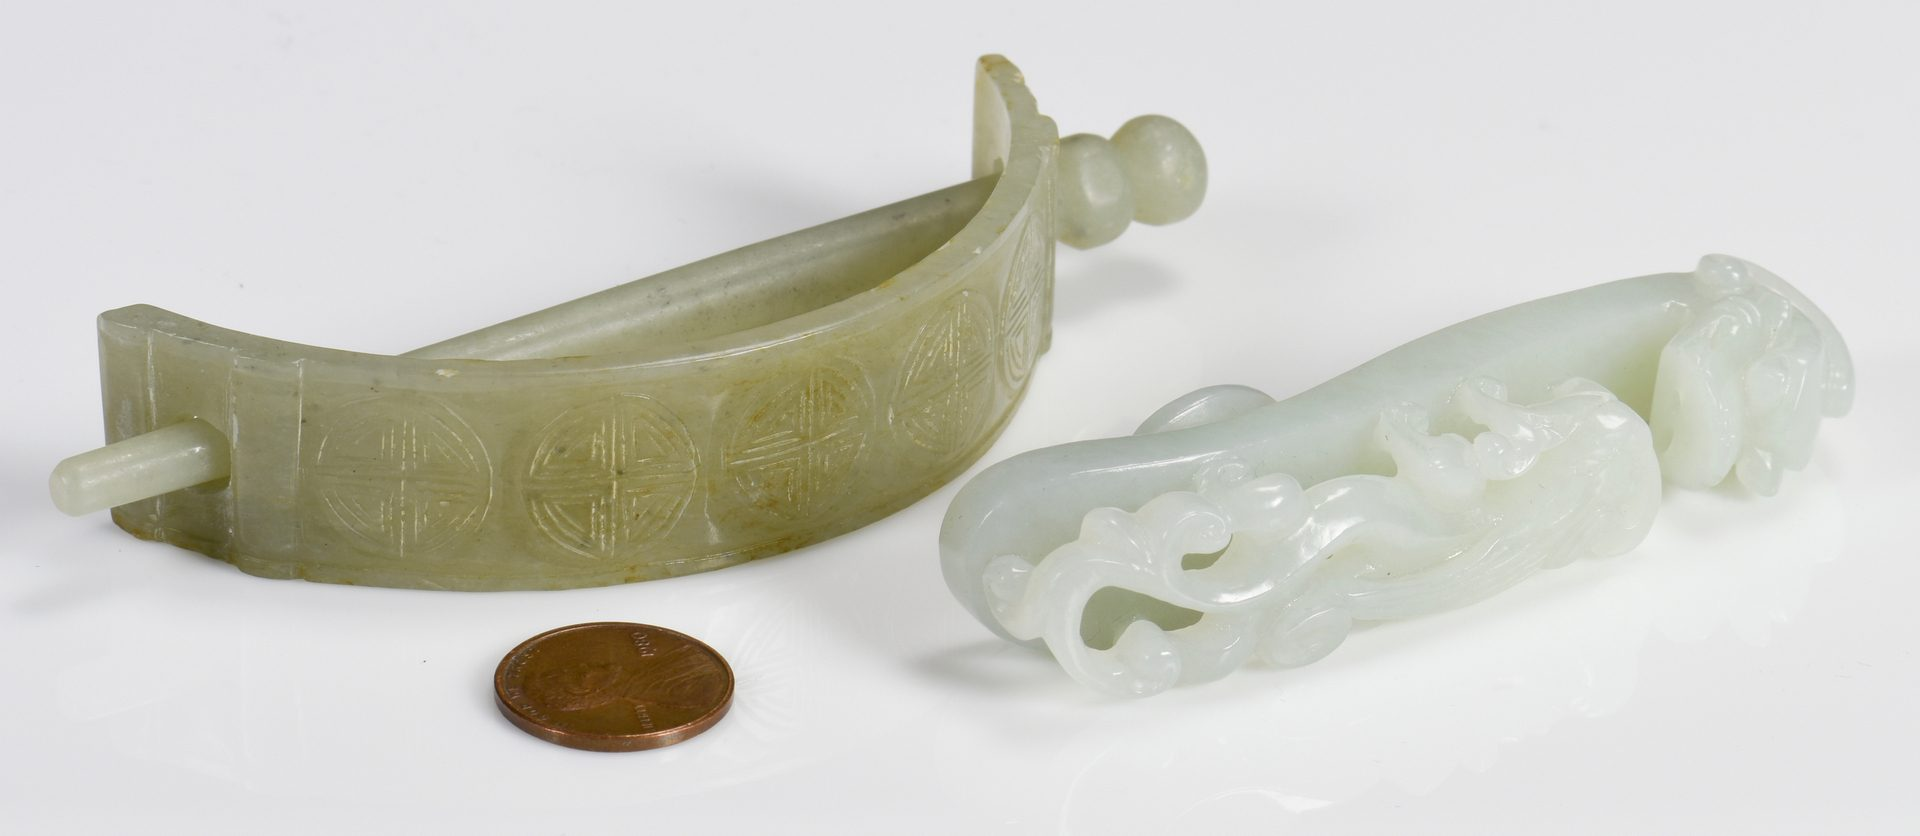 Lot 36: 2 Chinese Jade Items, Belt Hook & Hair Clasp